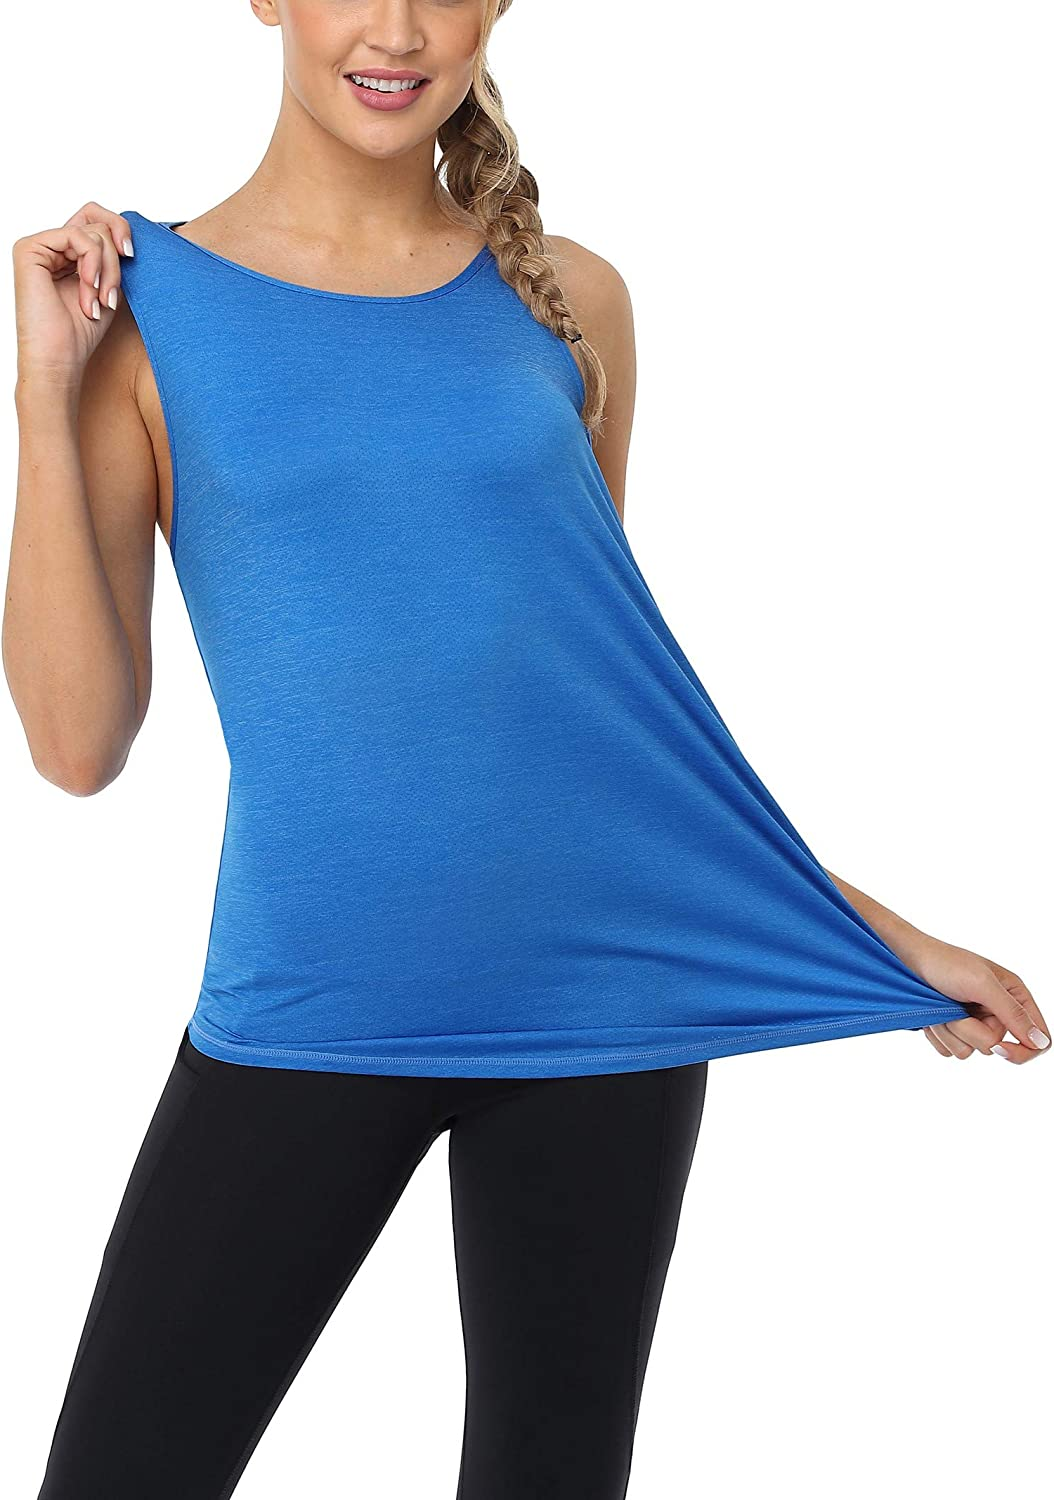 ATTRACO Workout Tank Tops for Women Fitness Muscle Tank Open Back Sports Shirts